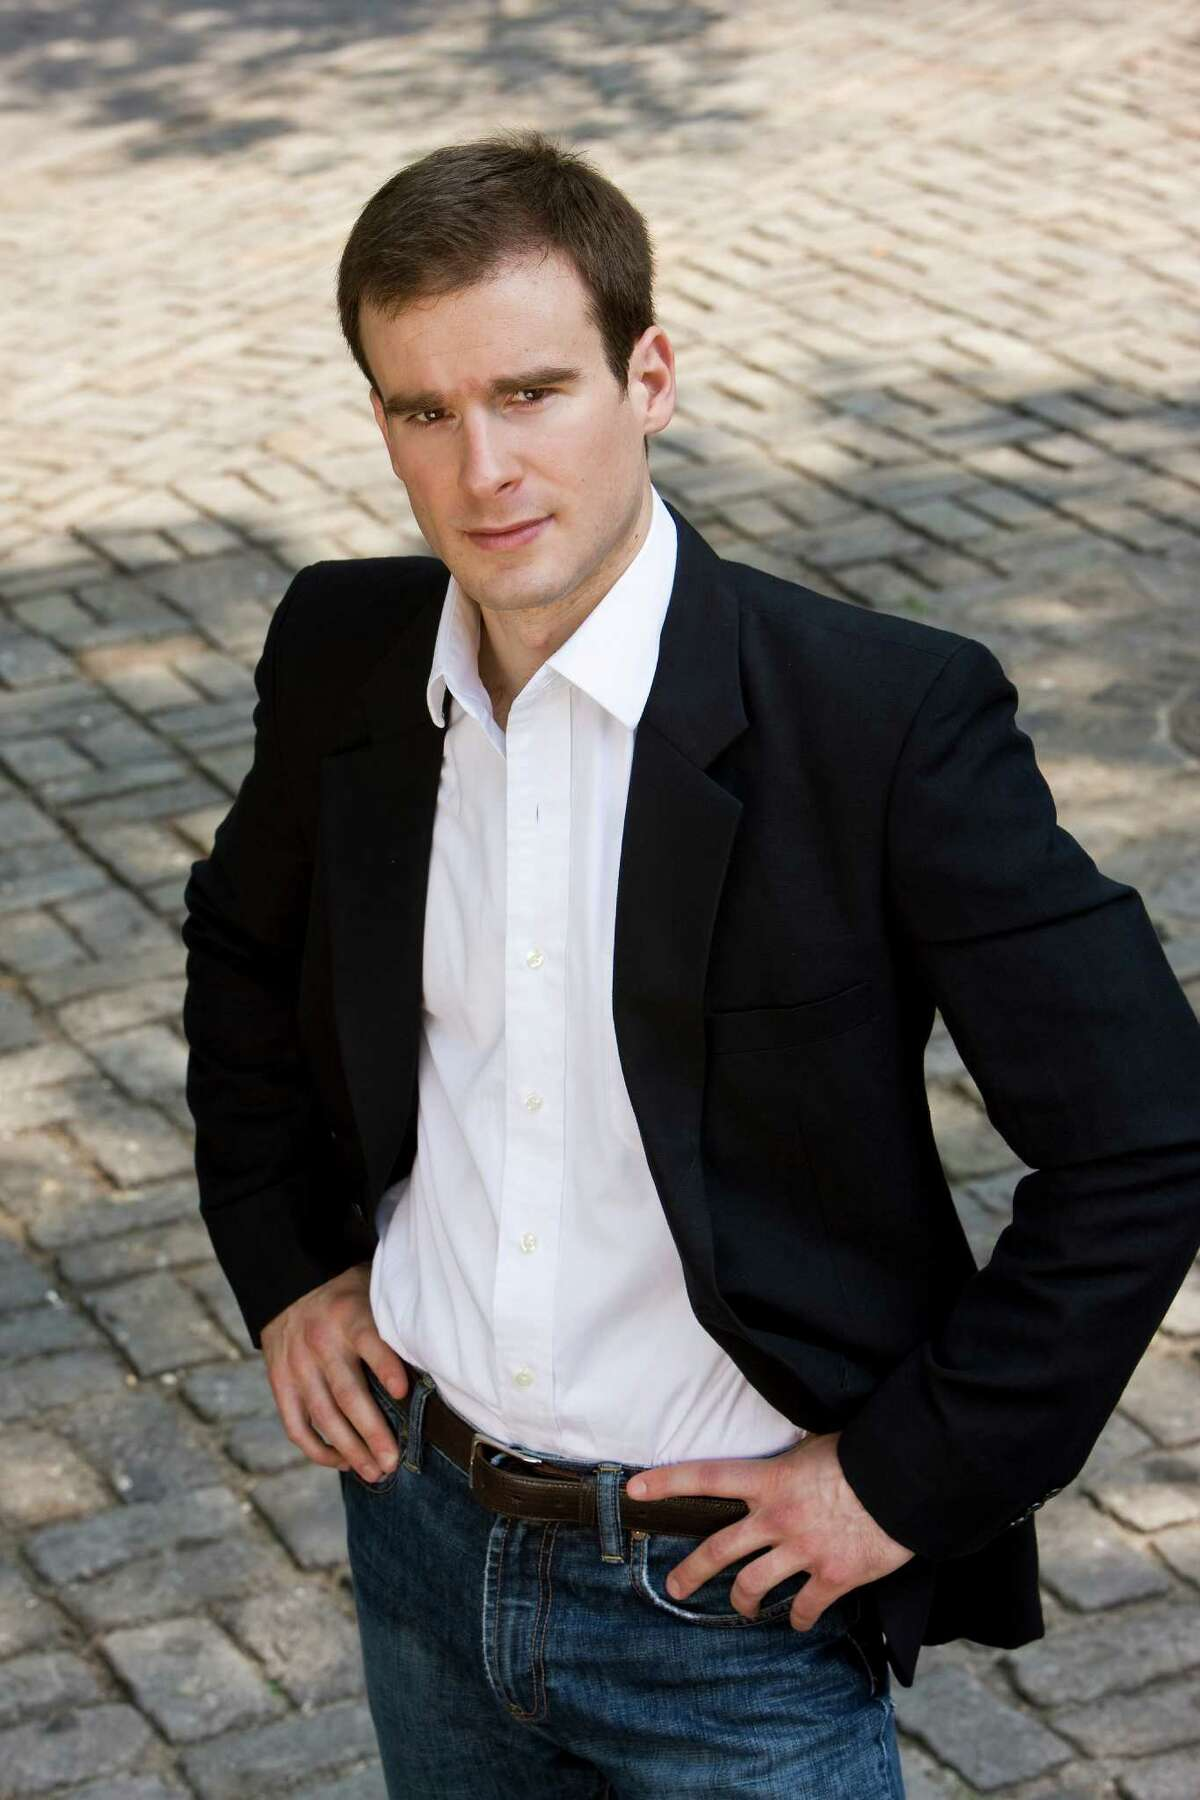 Vladimir Kulenovic will conduct the Houston Symphony in the Miller Outdoor Theatre. Vladimir Kulenovic, conductor